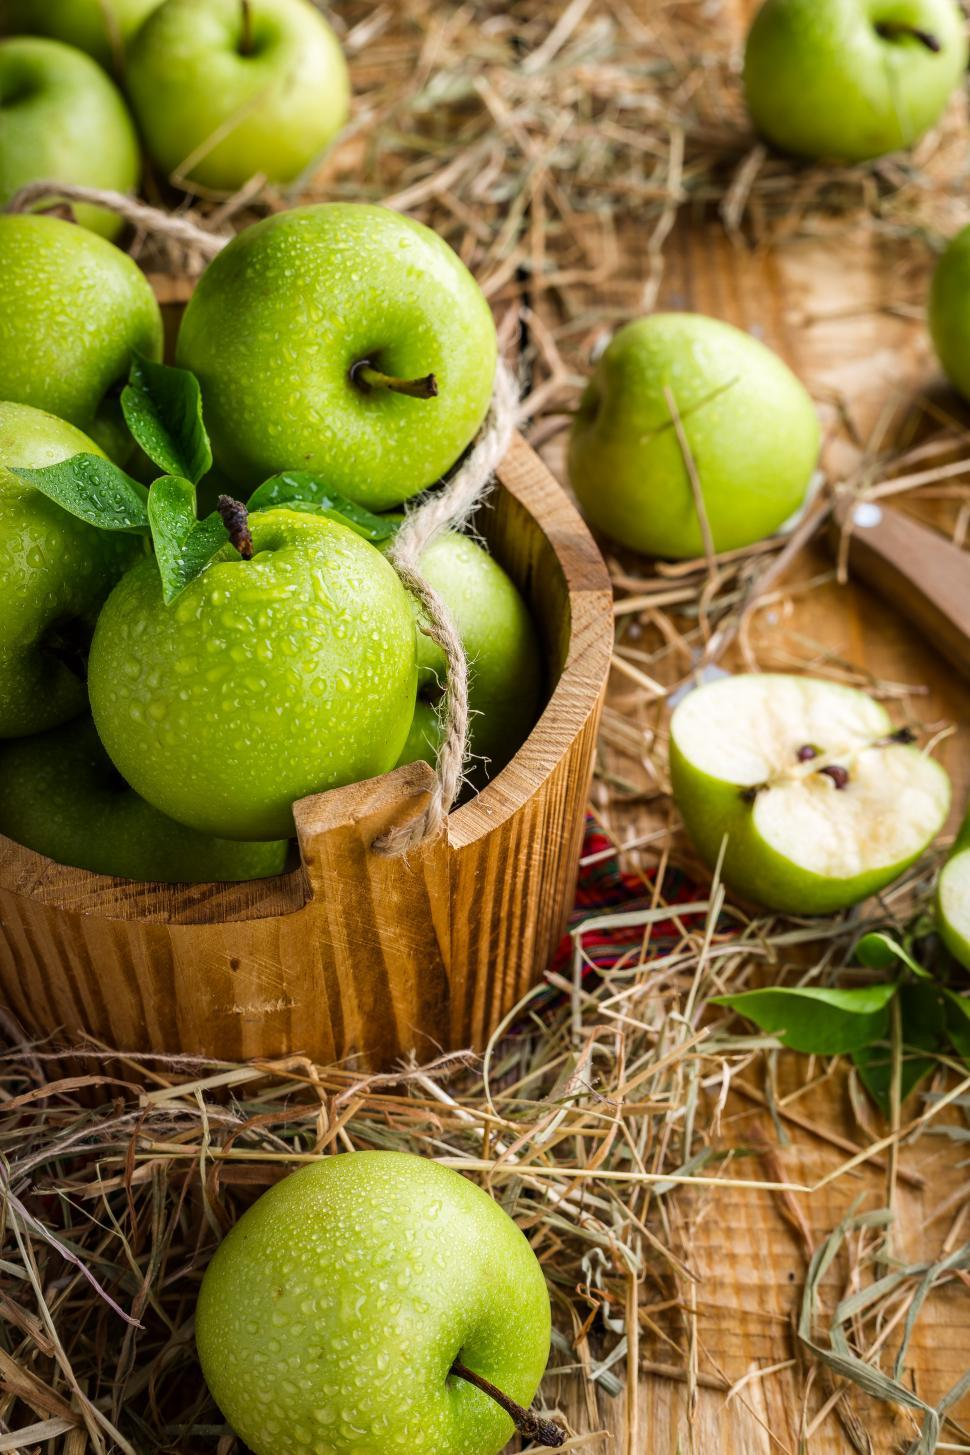 Download Free Stock HD Photo of Green Apples on Table Online